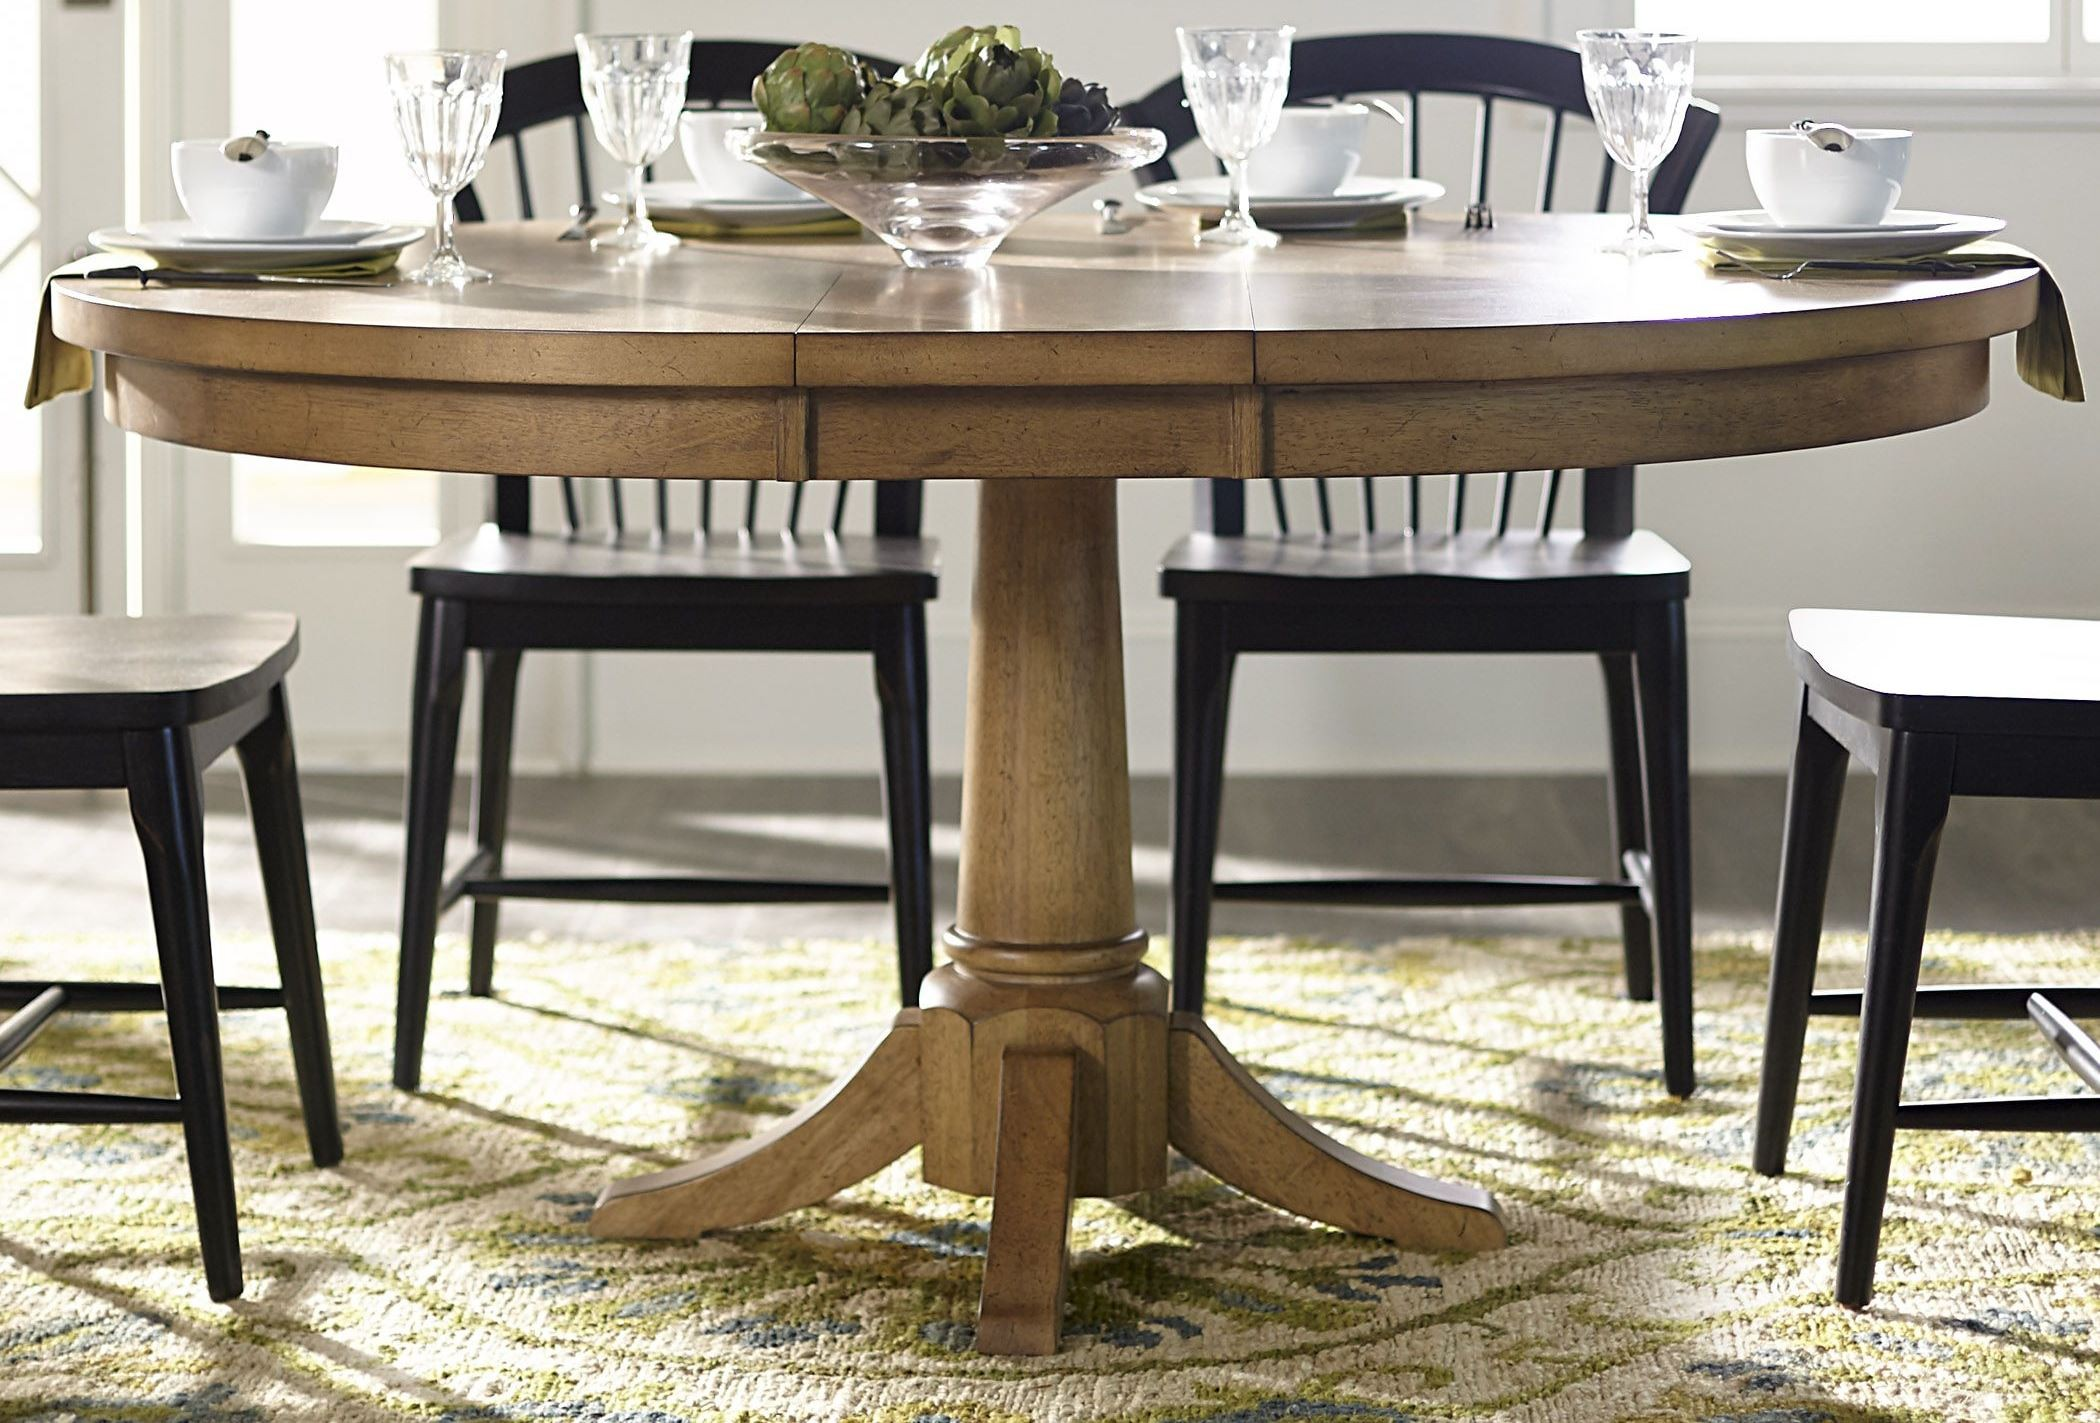 Expandable Round Dining Table For Sale Candler Nutmeg Expandable Round Pedestal Dining Table From